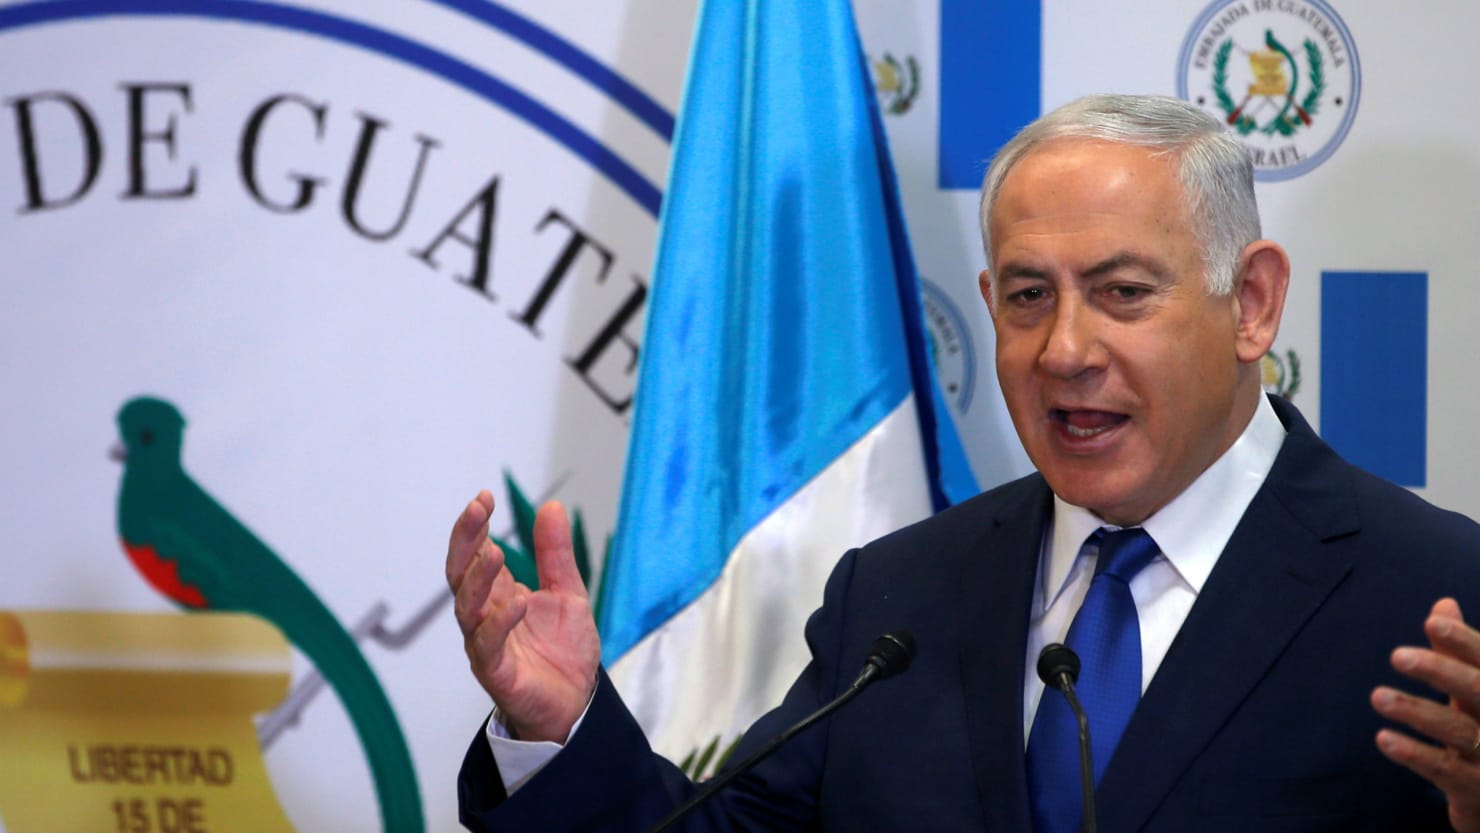 Image result for Guatemala becomes 2nd country to open Jerusalem Embassy